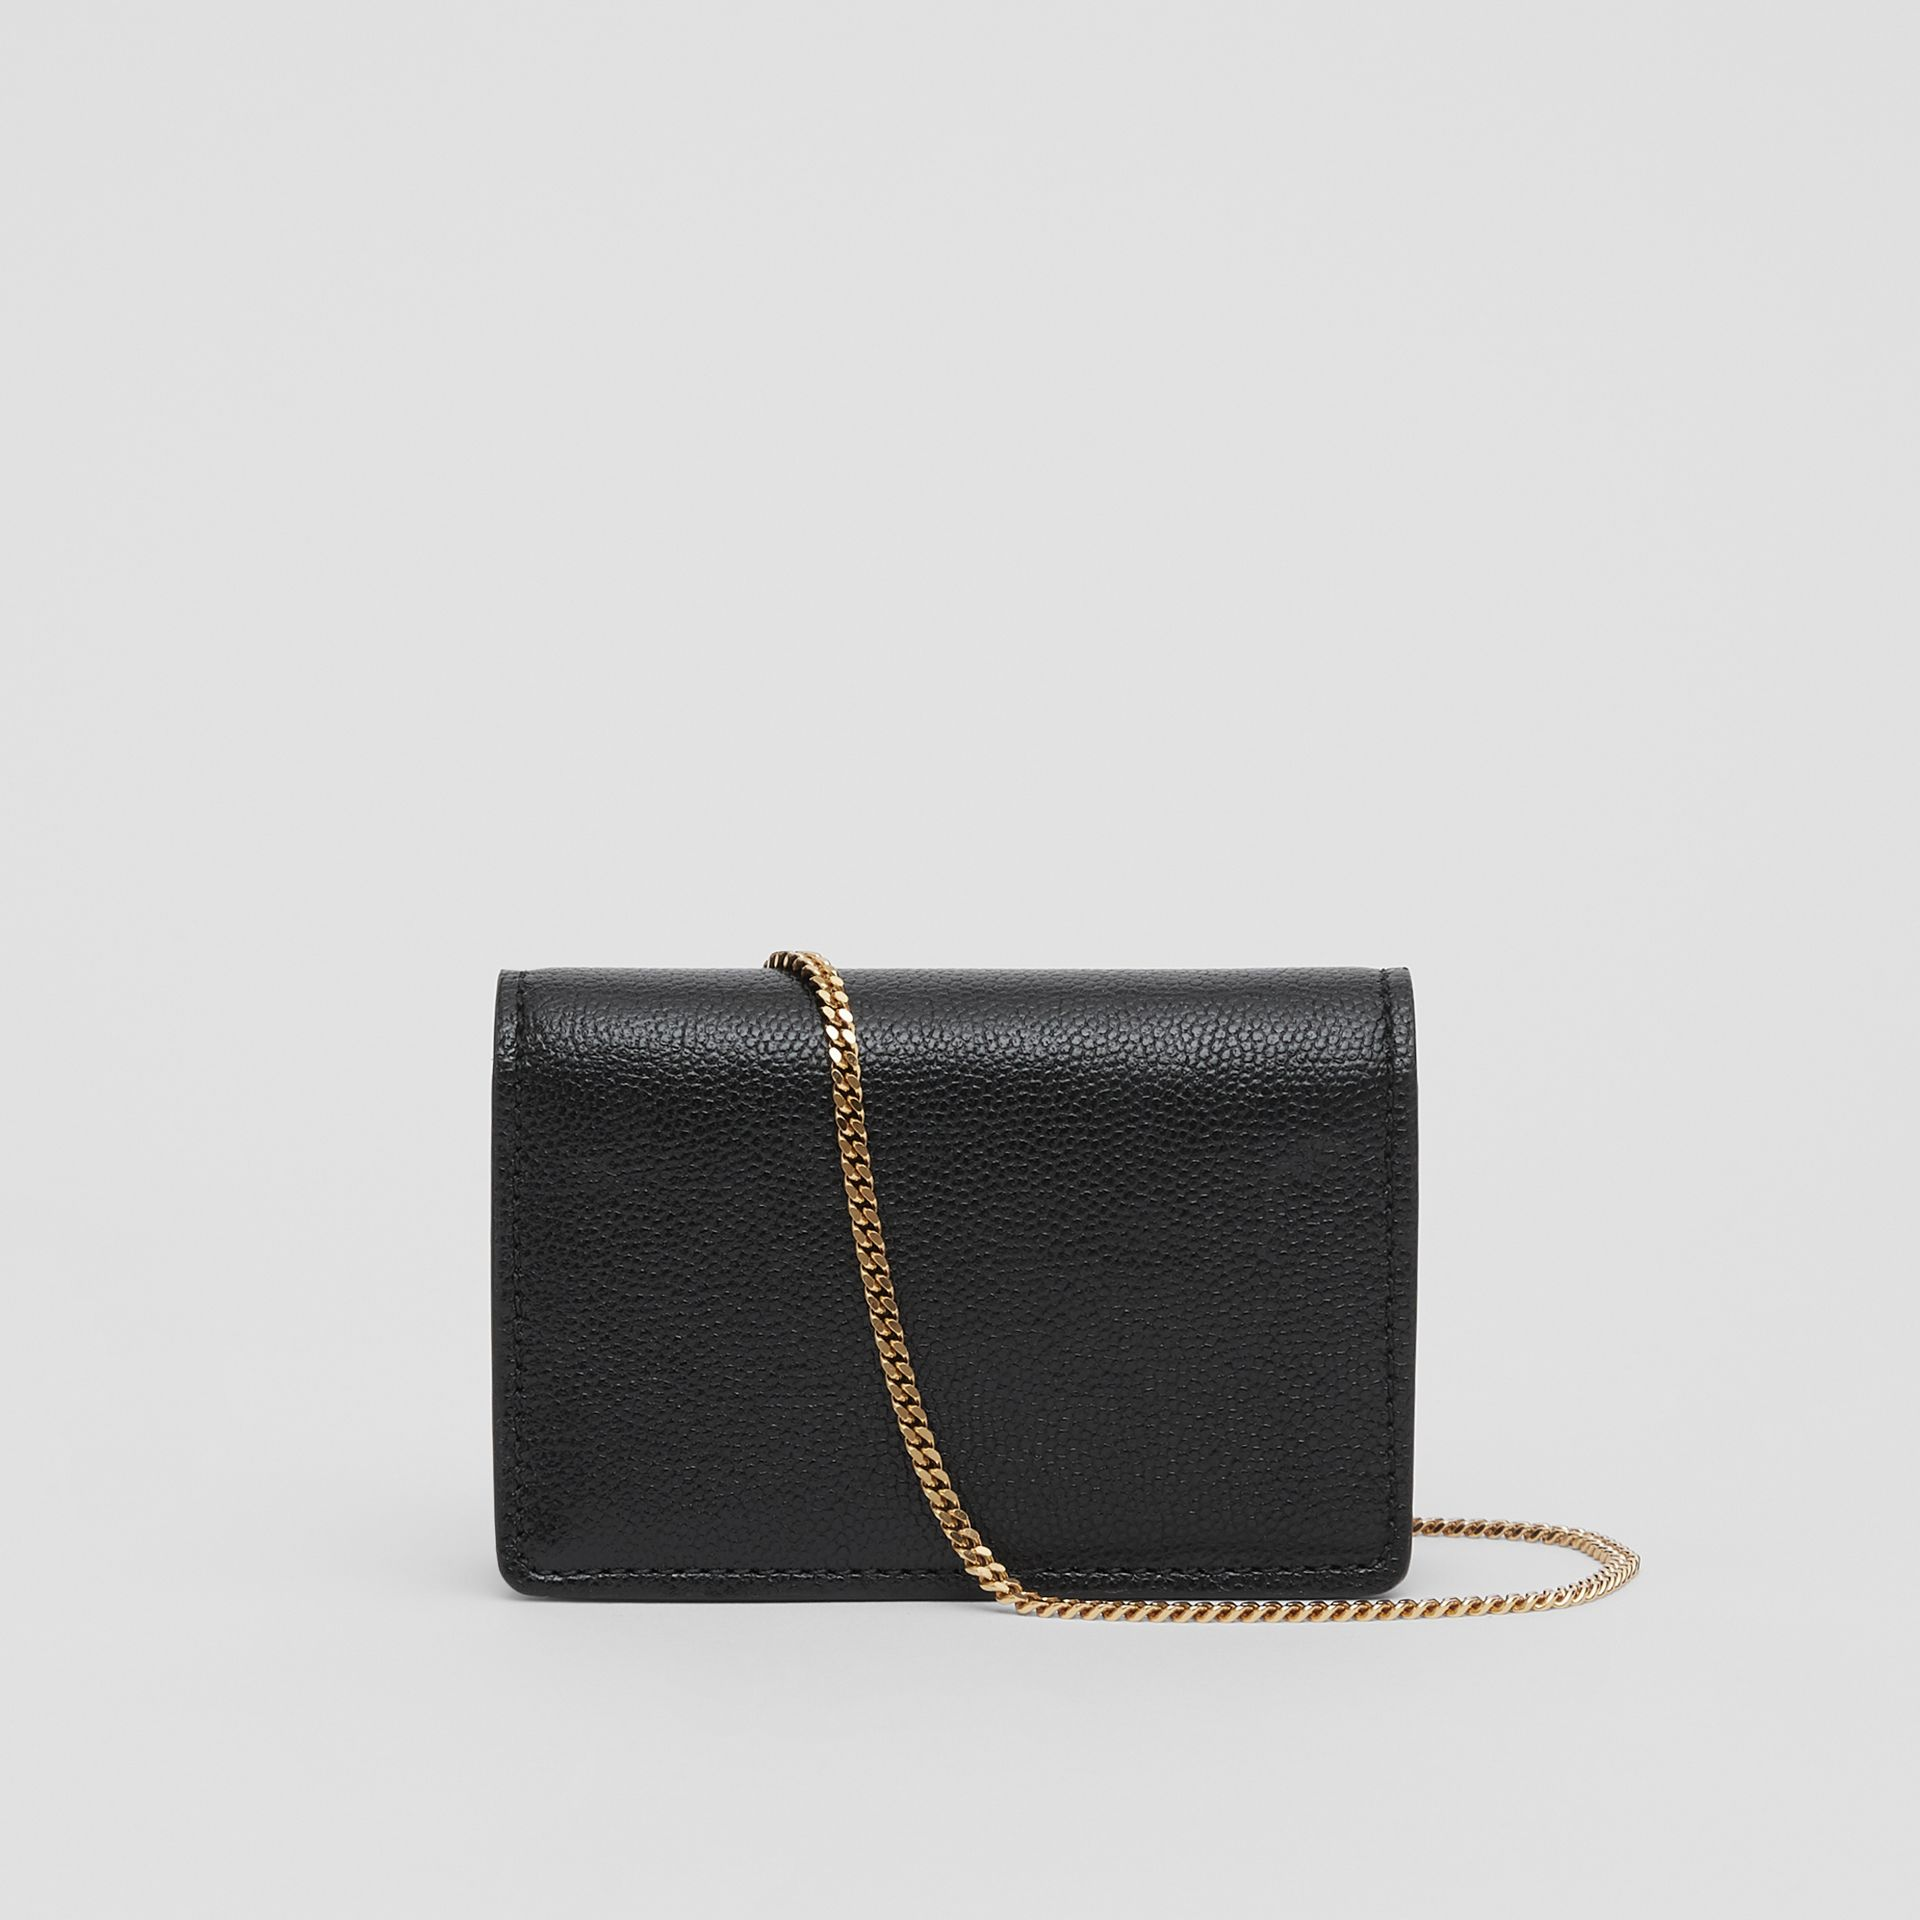 Grainy Leather Card Case with Detachable Strap in Black - Women | Burberry United Kingdom - gallery image 7